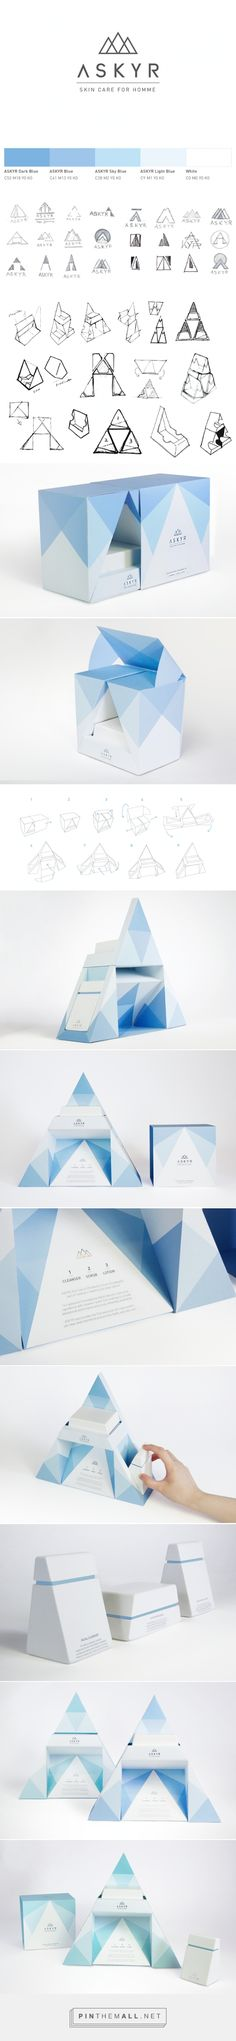 ASKYR #Skincare Product #packaging by In-young Bae, Hsiao Han Chen, Jiaru Lin & Sungmin Kim - http://www.packagingoftheworld.com/2015/02/askyr-skincare-product-student-project.html